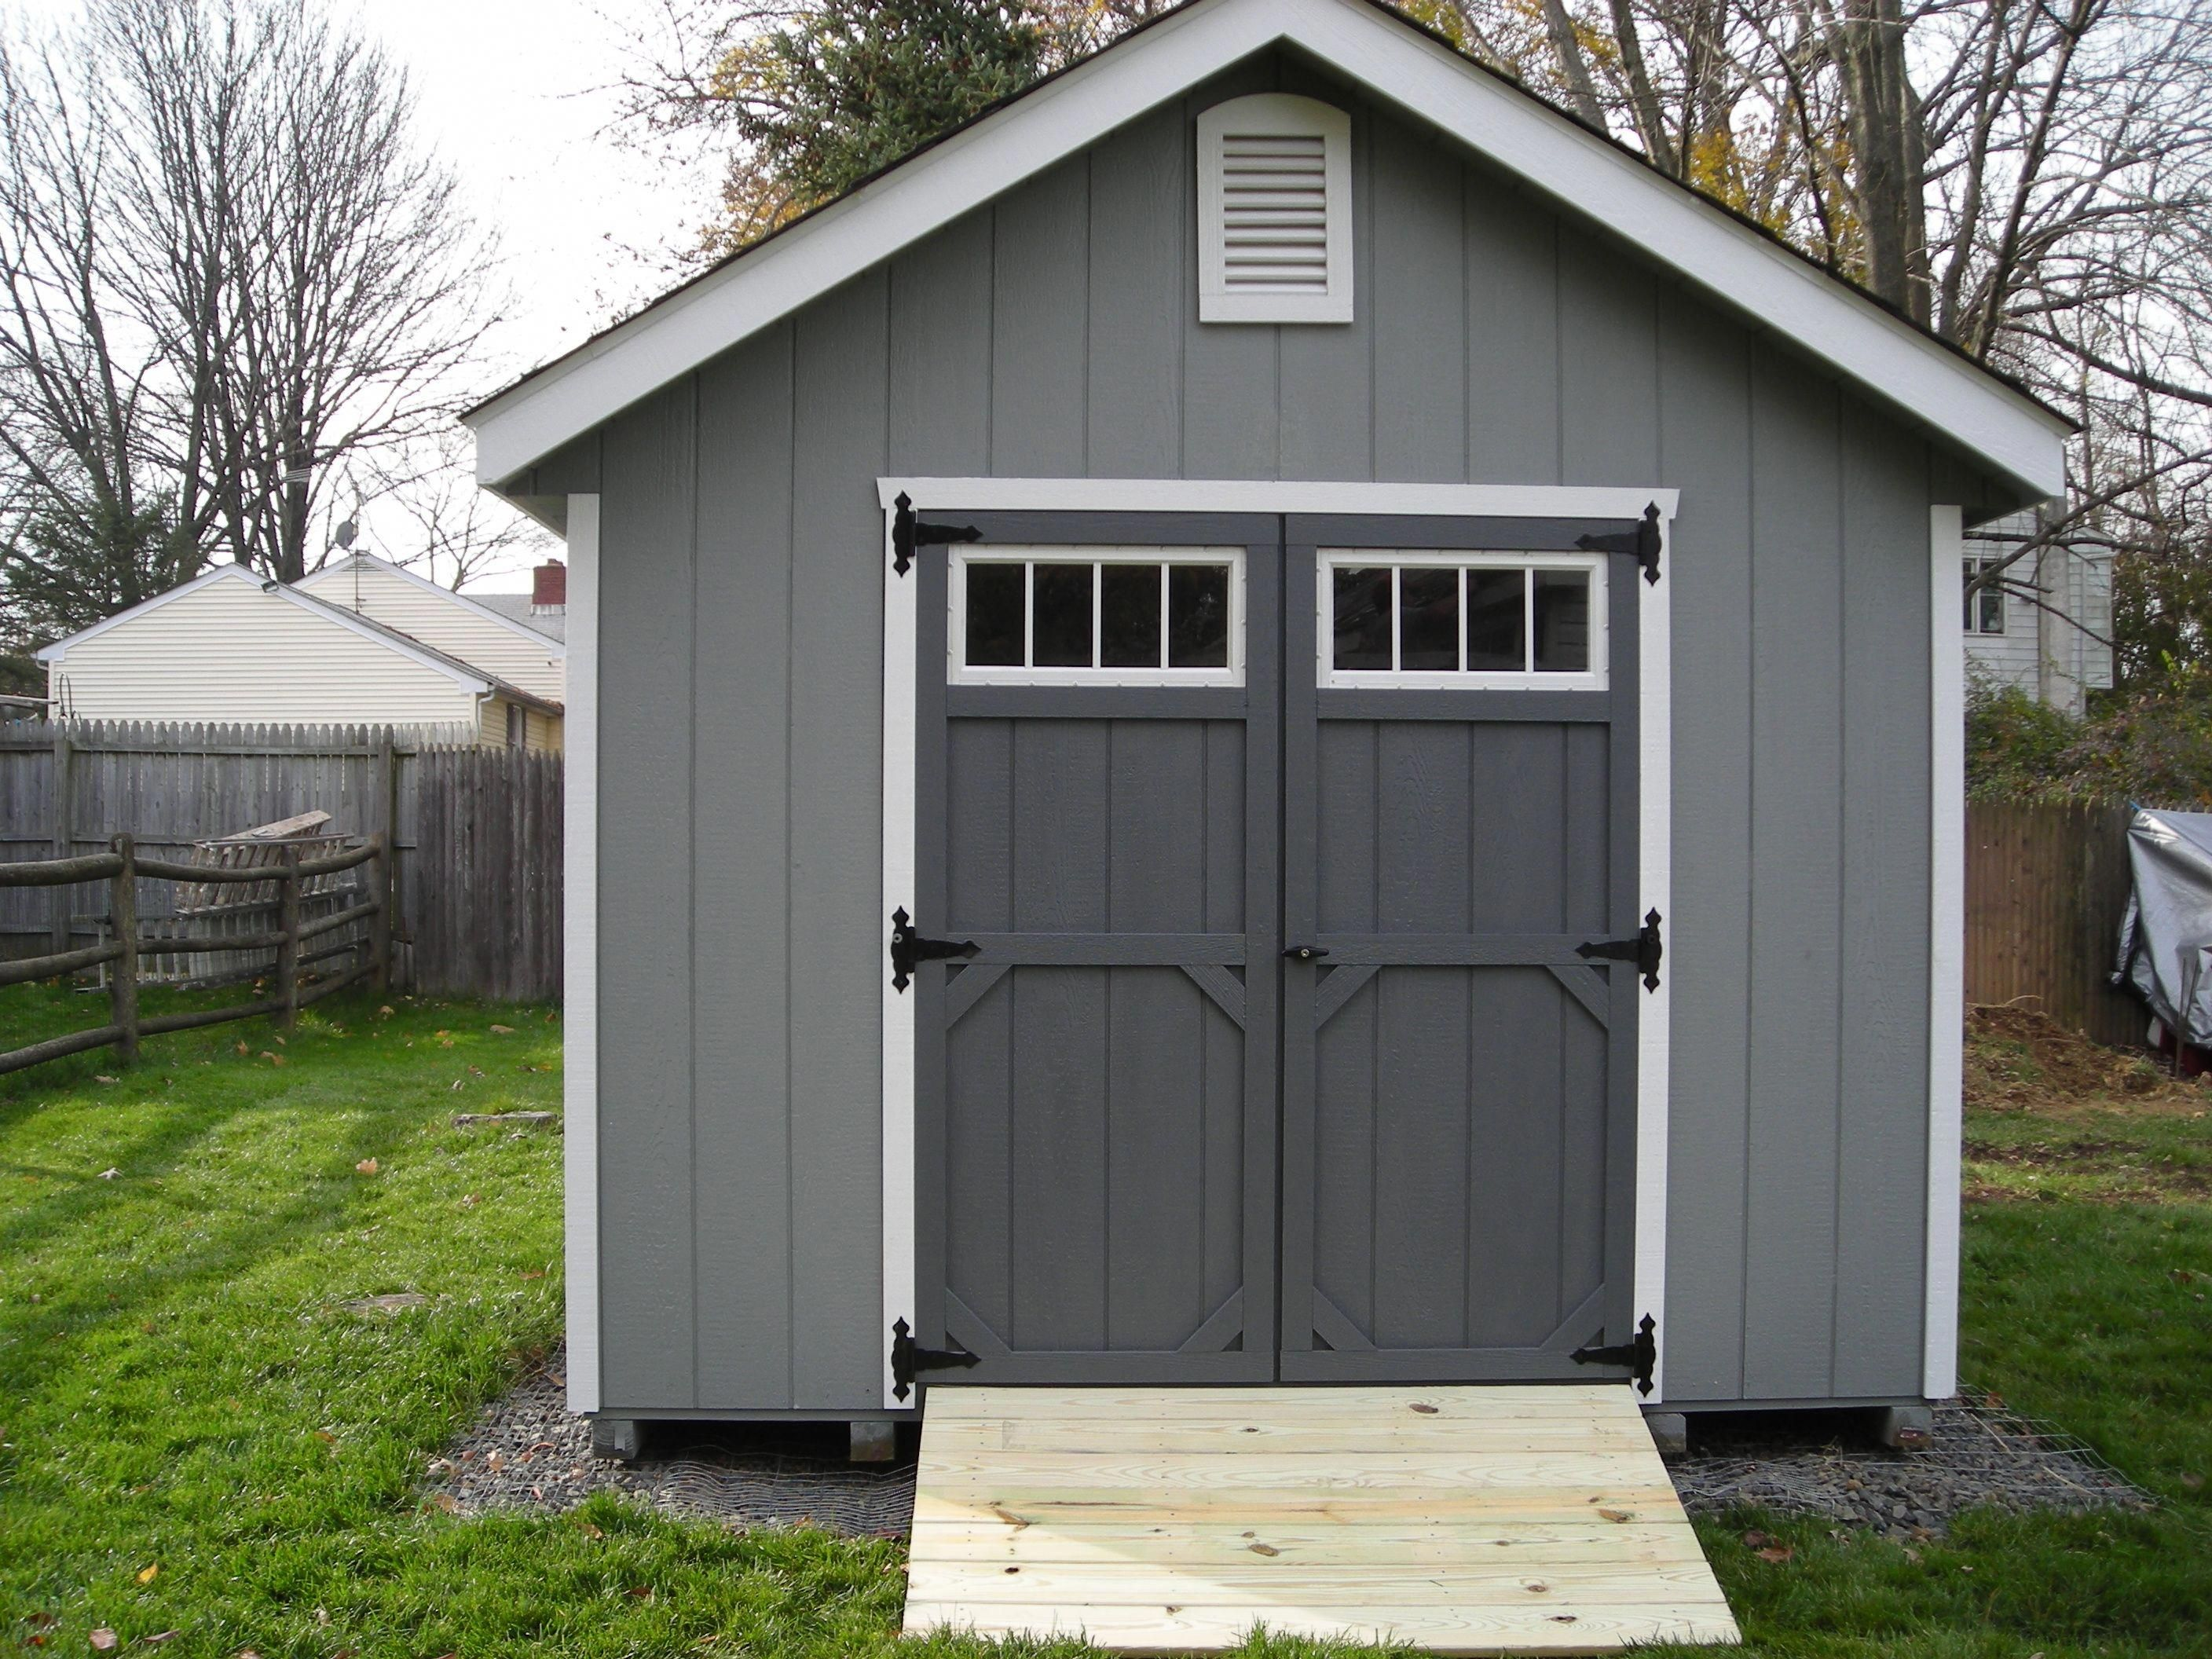 Great Shed Designs Storage Solutions Sheds Pa Garden Shed Sheds And Storage Sheddesigns Backyard Sheds Shed Makeover Backyard Storage